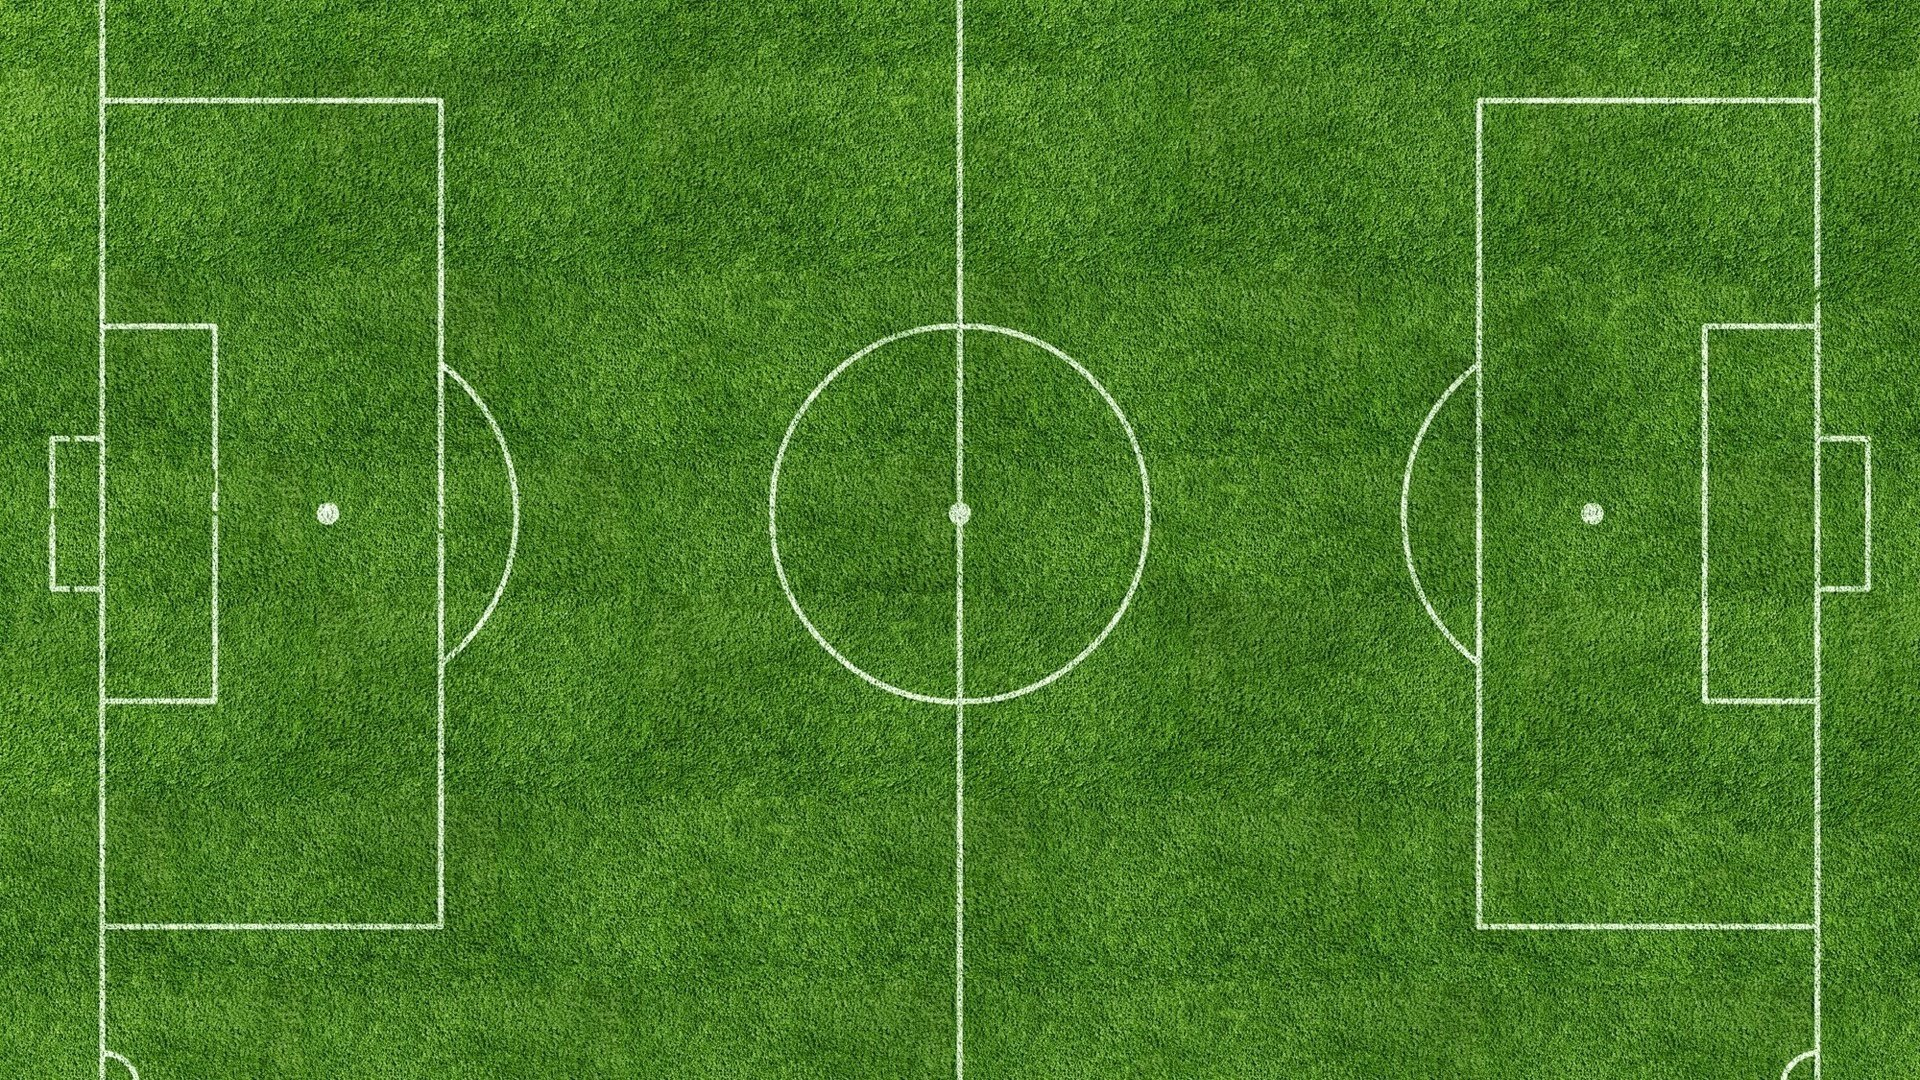 Soccer Hd Wallpaper Background Image 1920x1080 Id